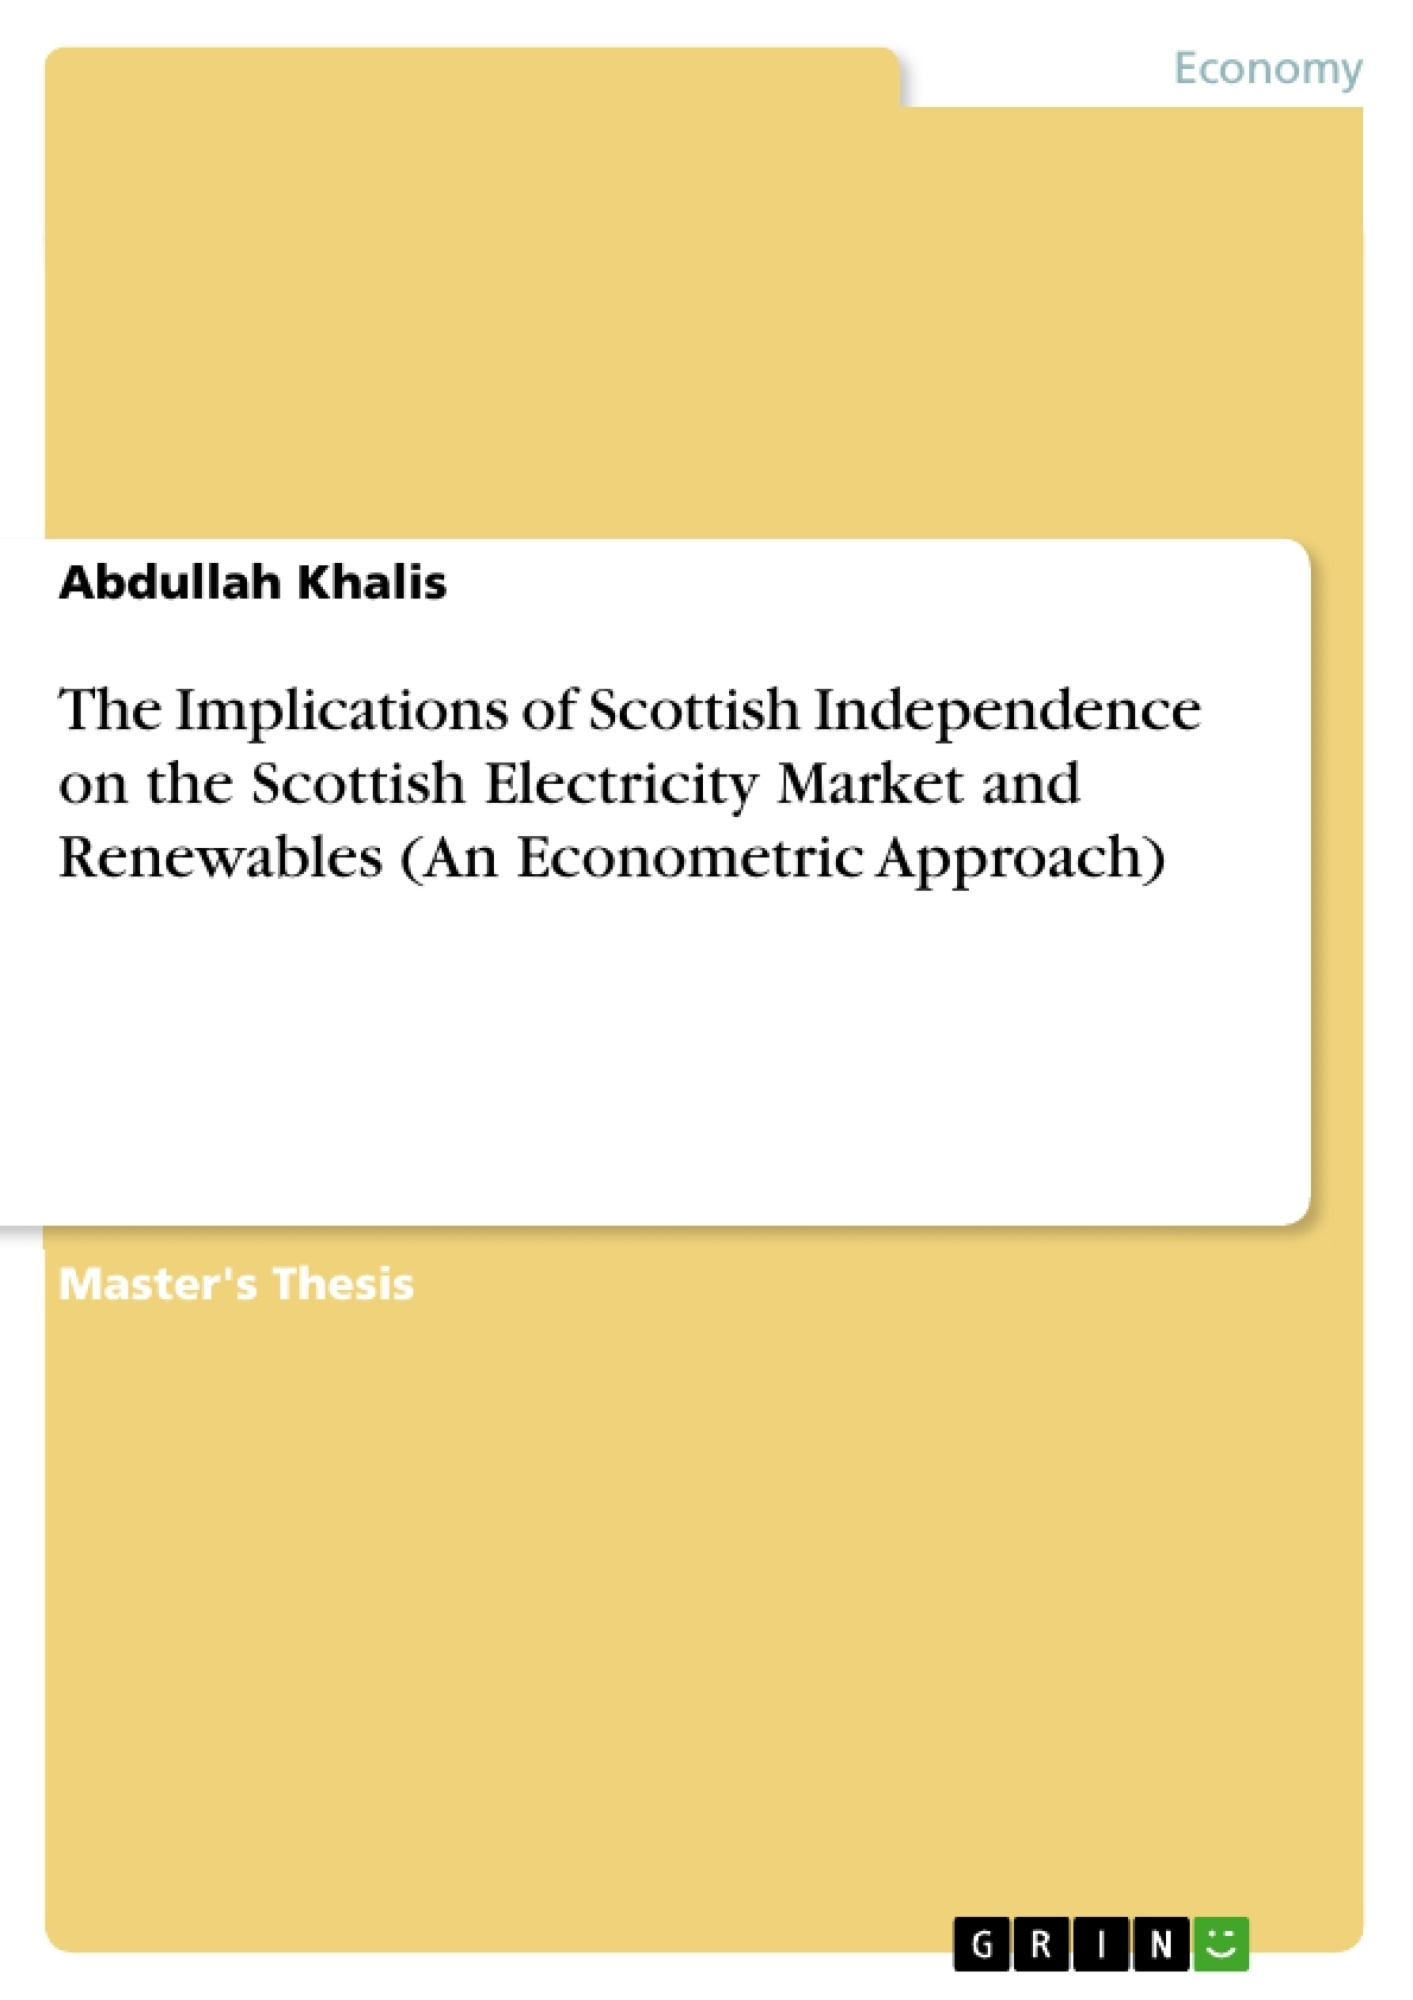 Title: The Implications of Scottish Independence on the Scottish Electricity Market and Renewables (An Econometric Approach)